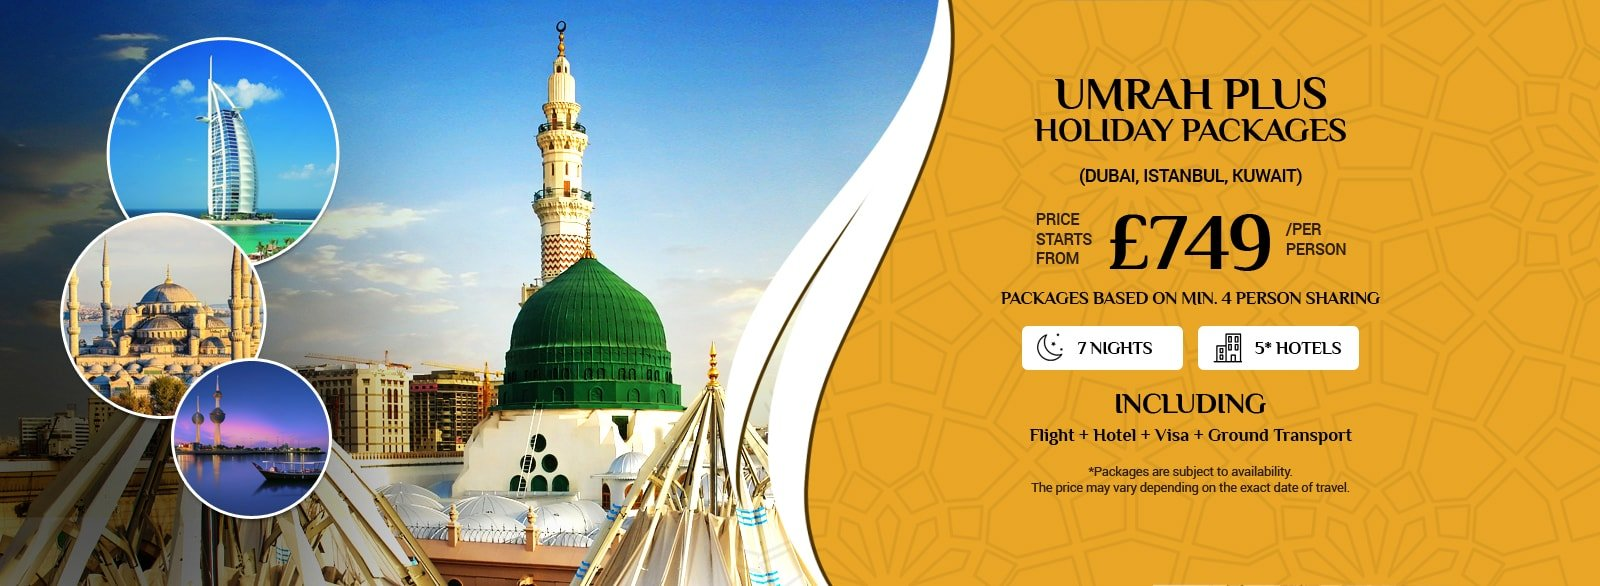 Umrah Banner: Umrah Packages All Inclusive From UK